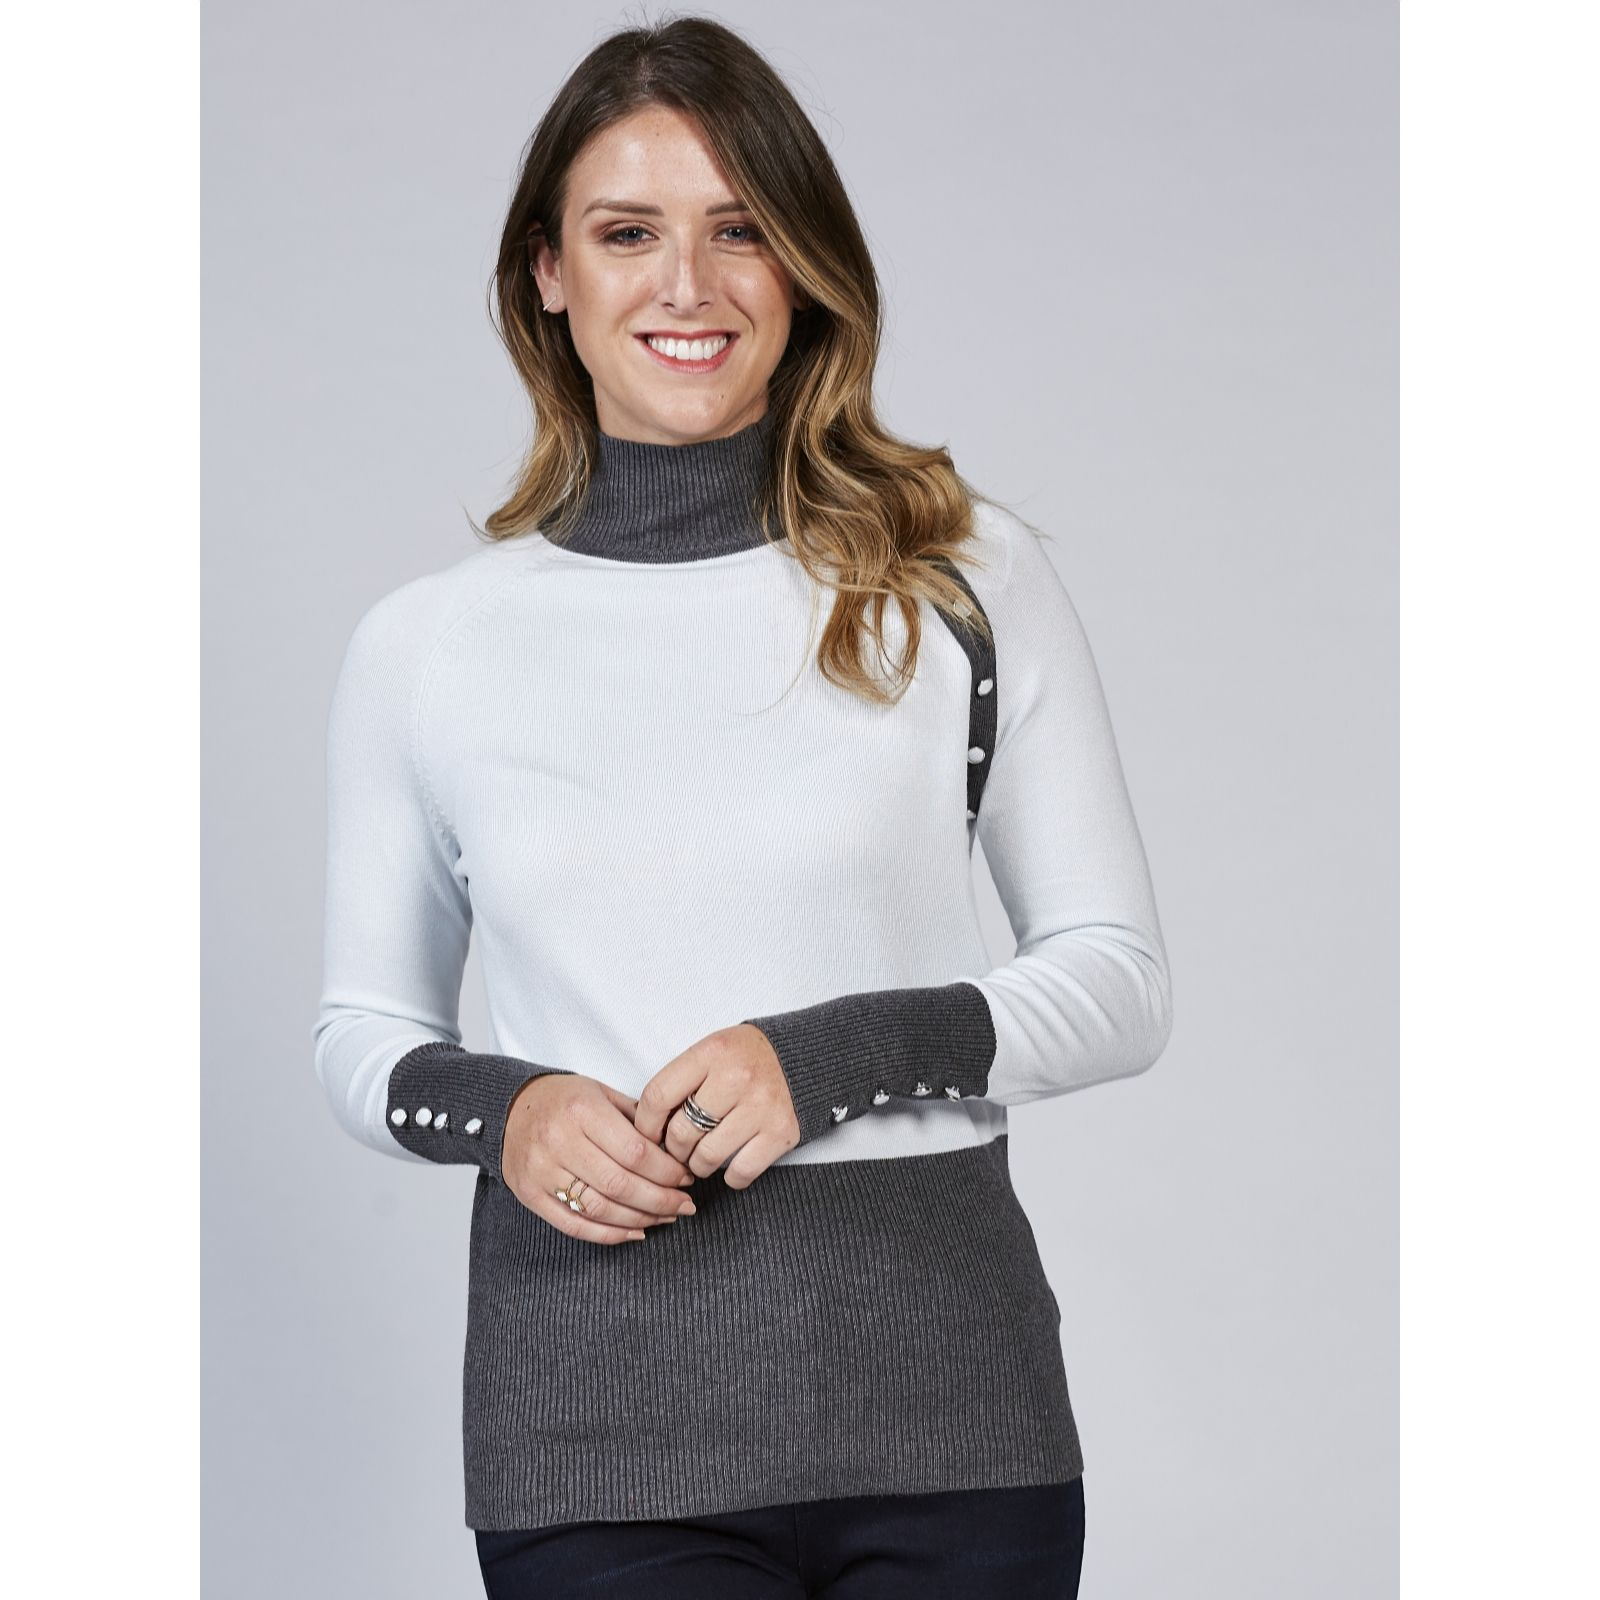 Marble Soft Touch Polo Neck with Contrast & Buttons at Neck